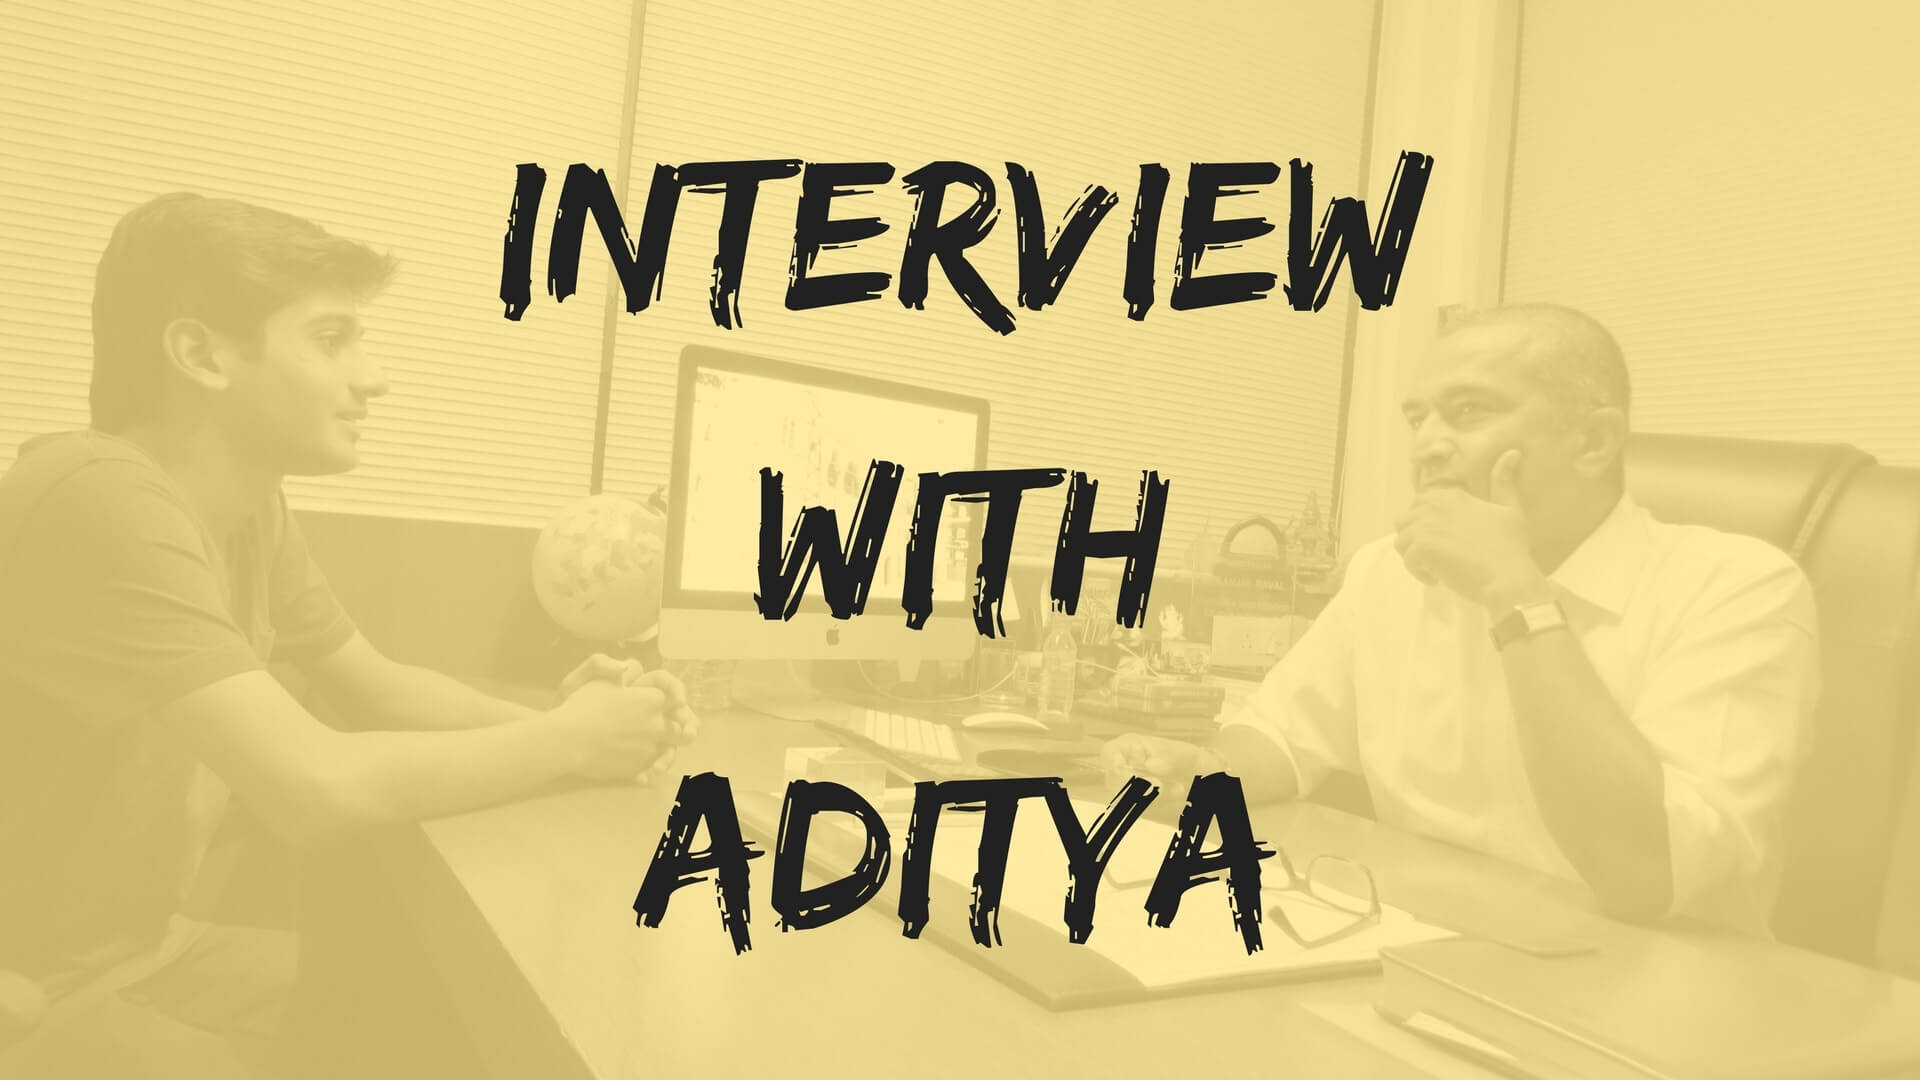 Interview With Aditya